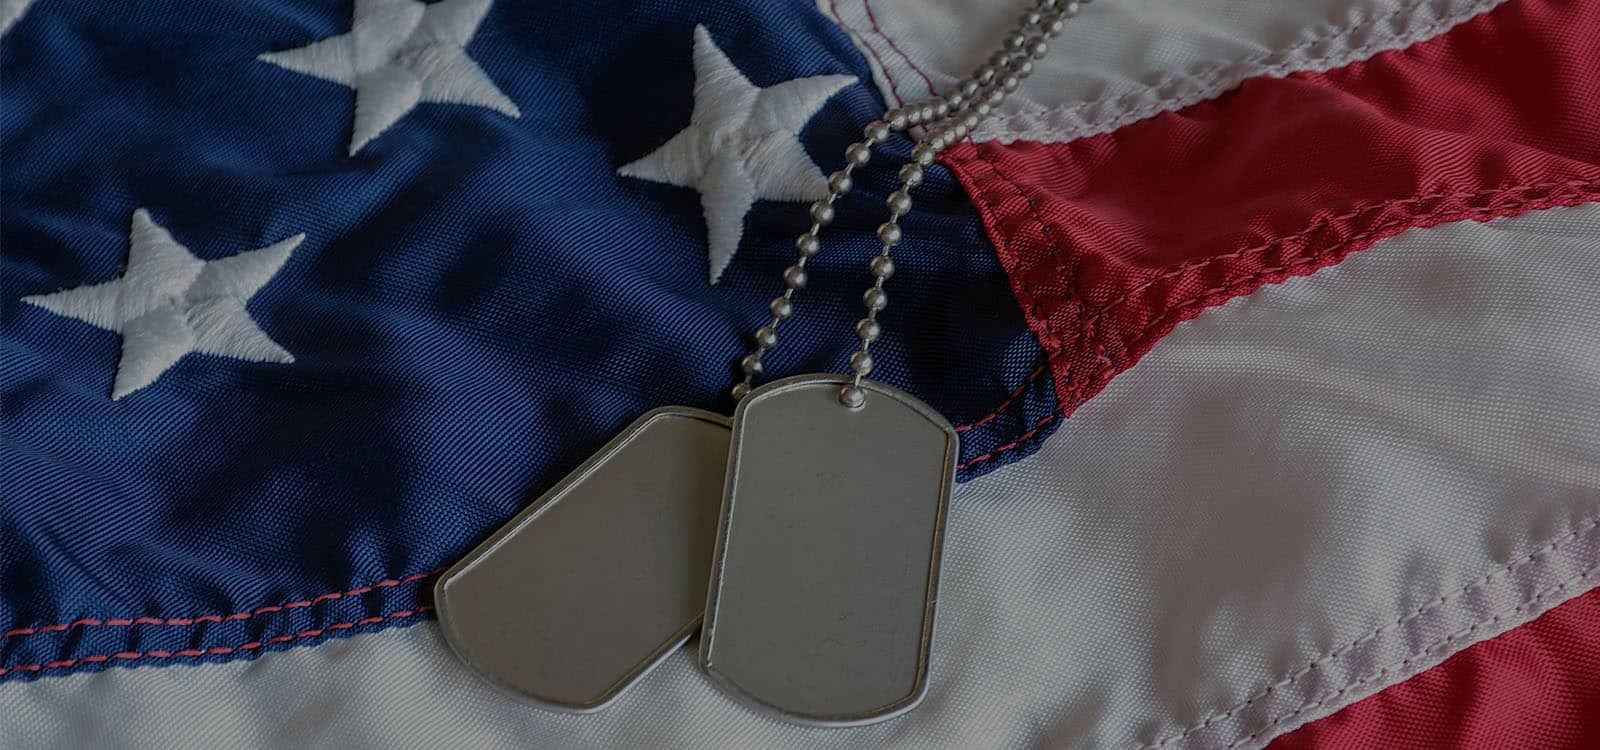 Va Benefits For Spouses military dog tags on American flag with embroidered stars